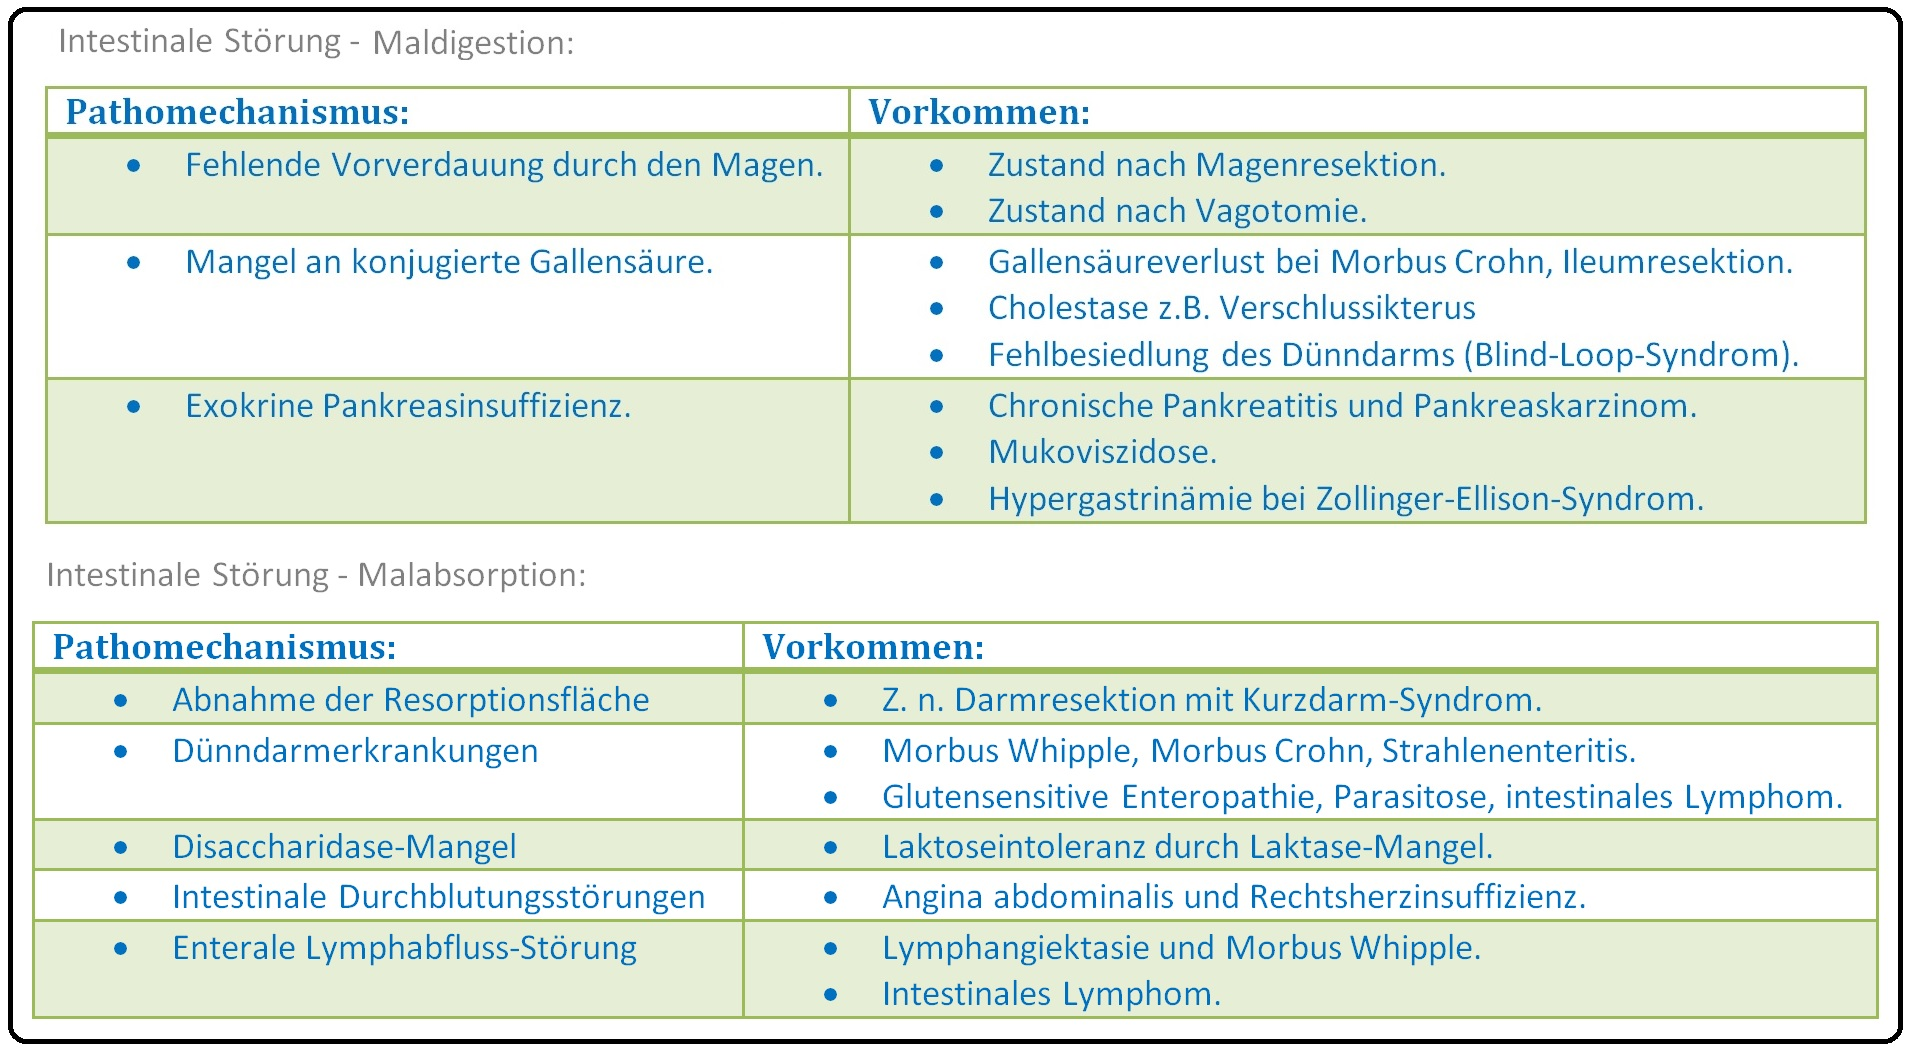 598 Intestinale Störung   Maldigestion Malabsorption